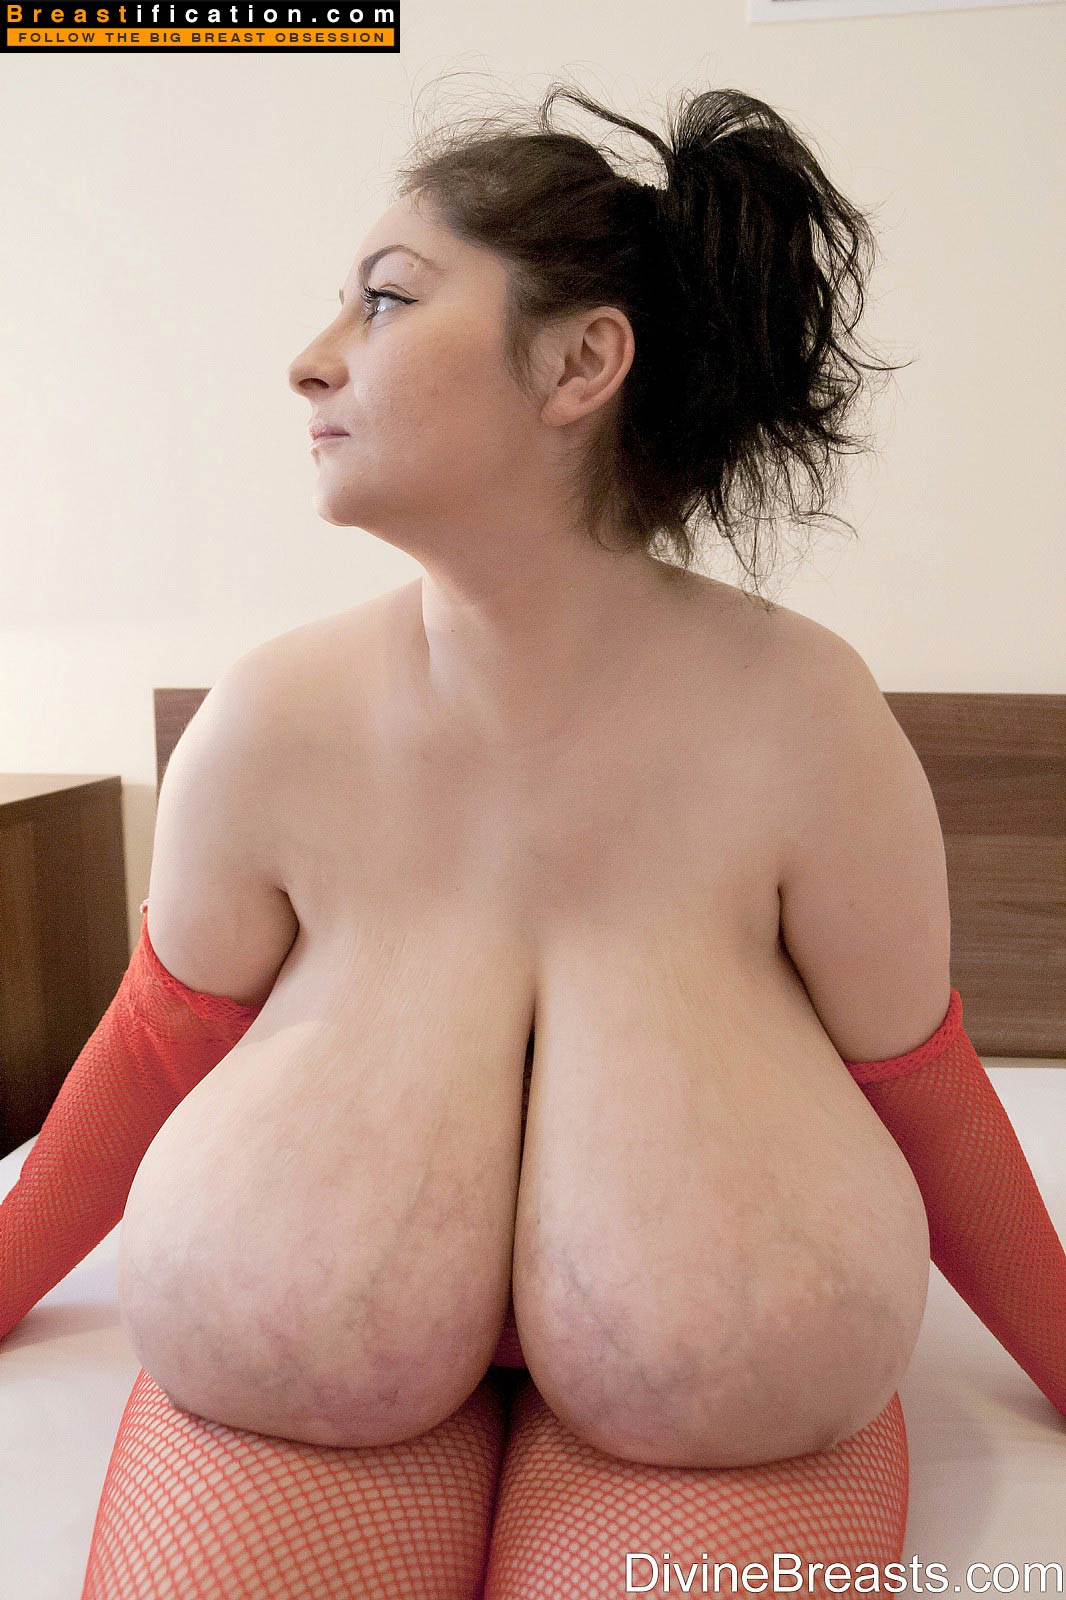 All big boob natural picture congratulate